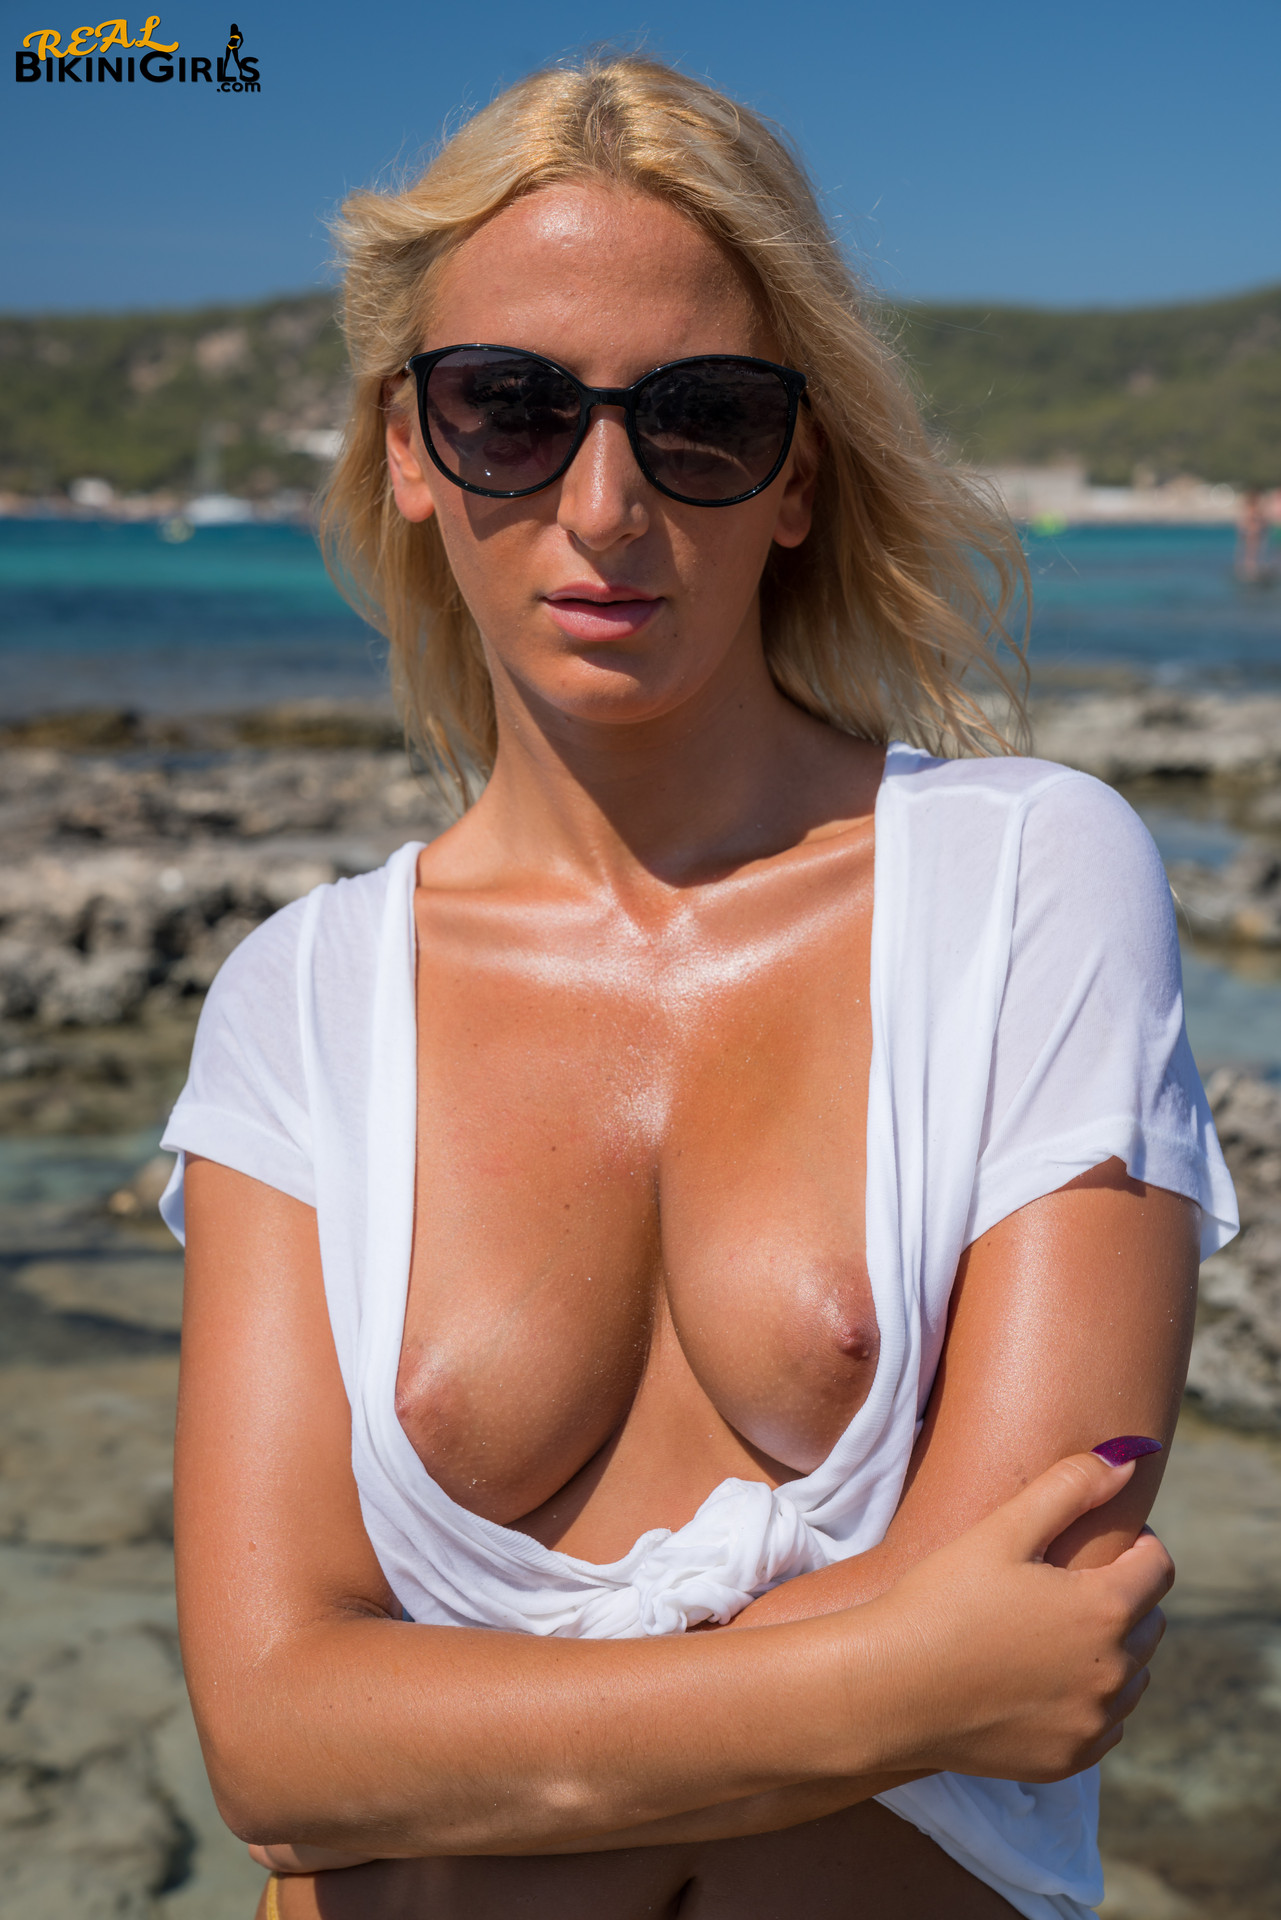 Girls with big boobs wet t shirt